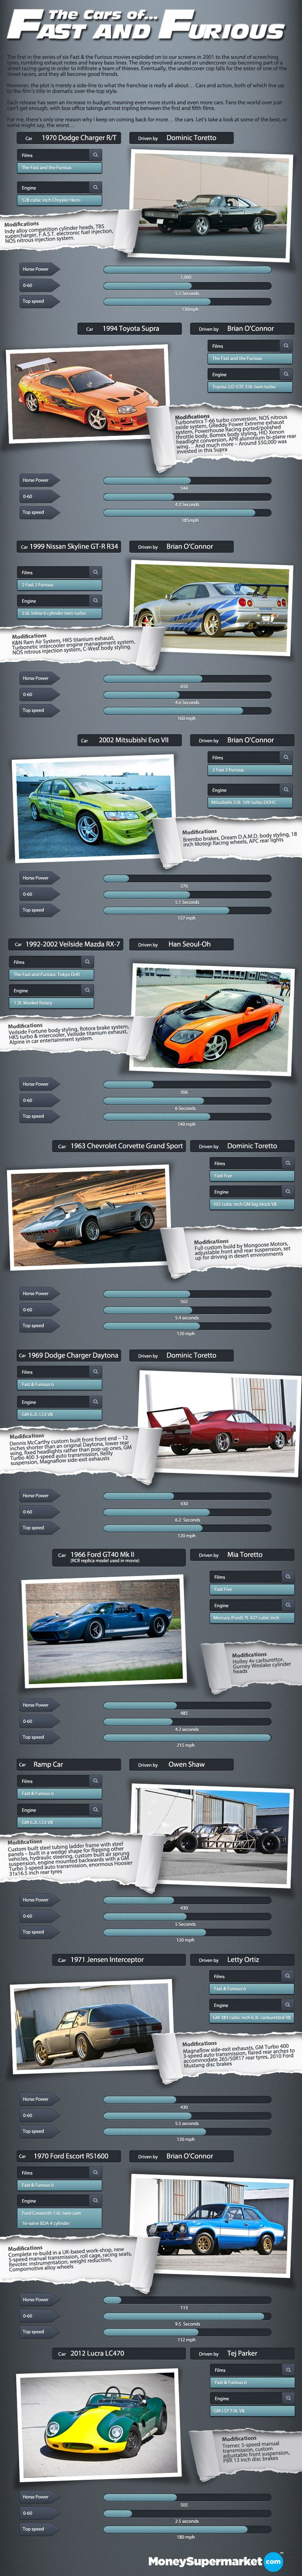 De culto tuerca... Cars of The Fast and the Furious [Infographic]